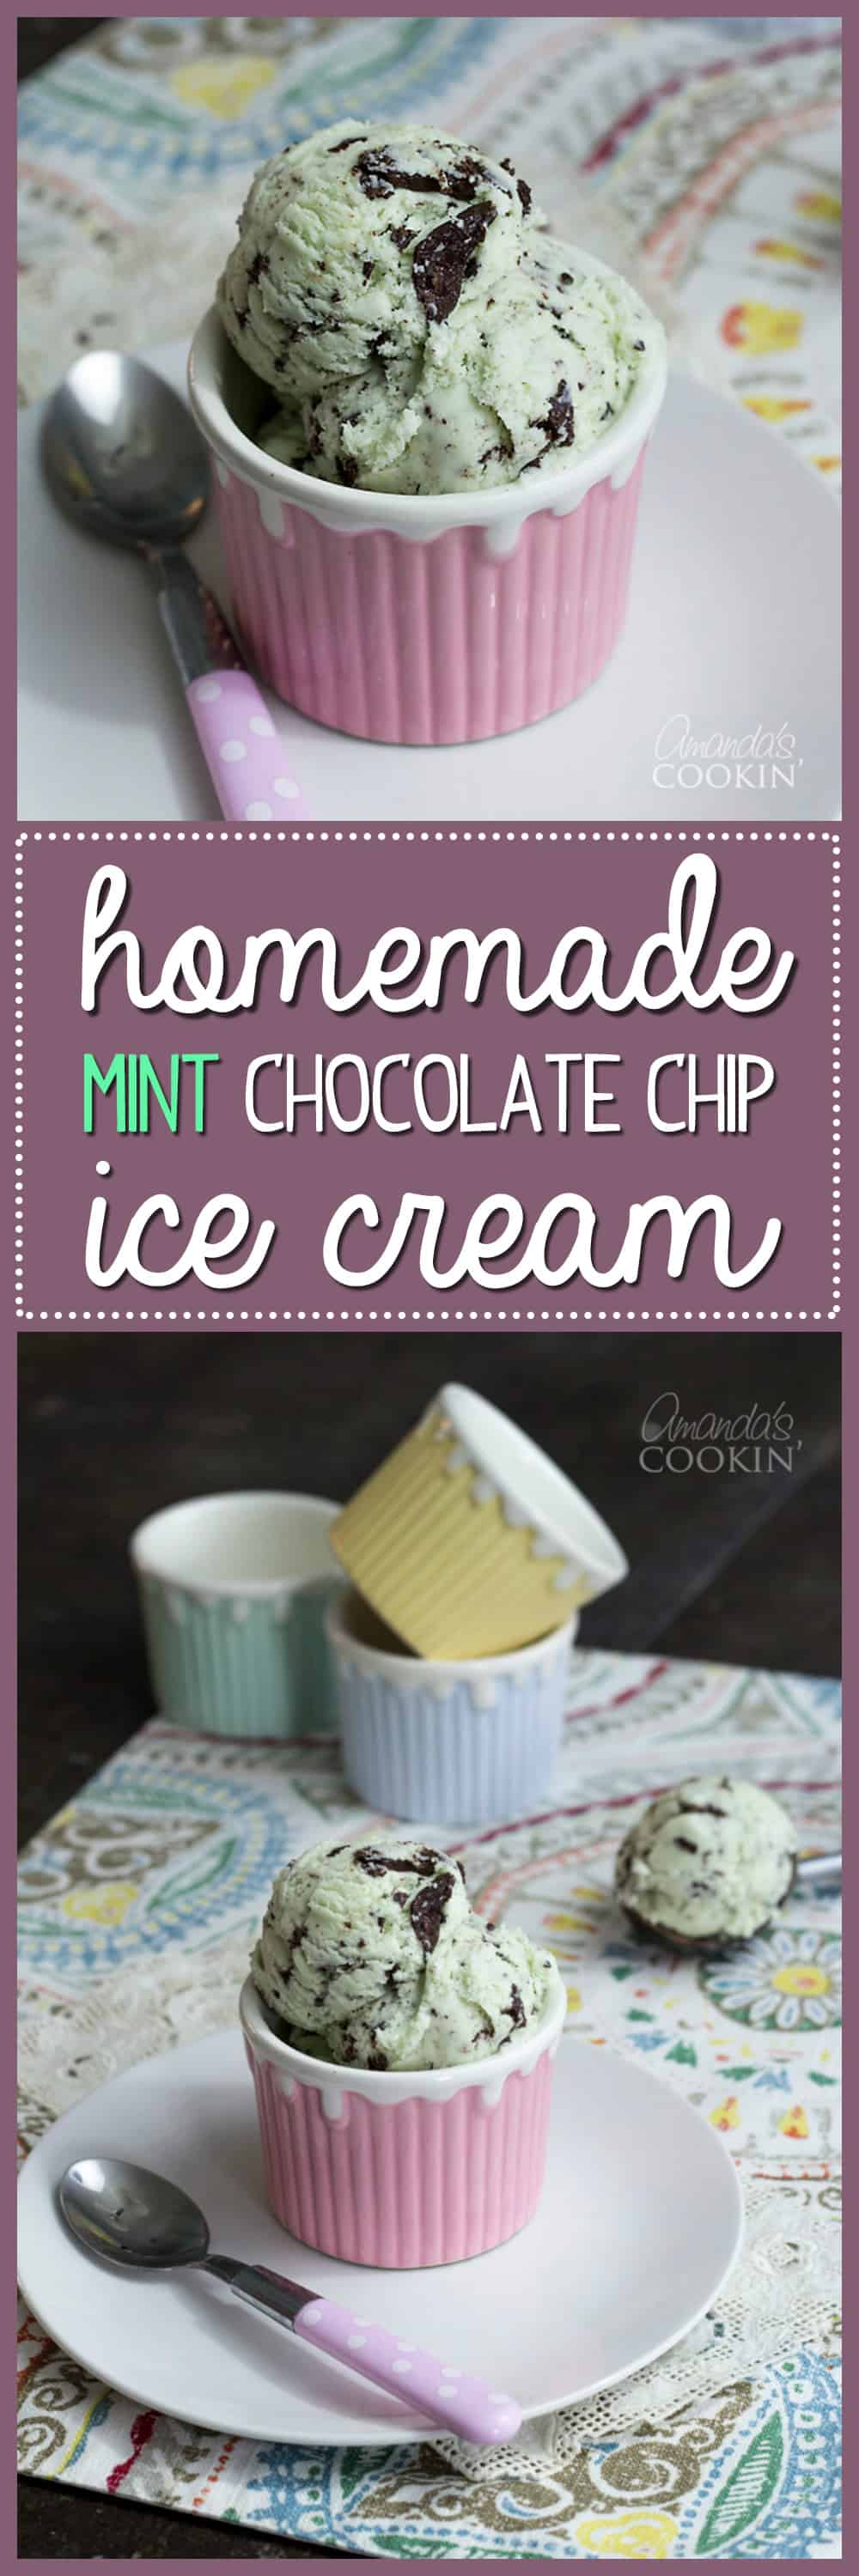 mint chocoloate chip ice cream